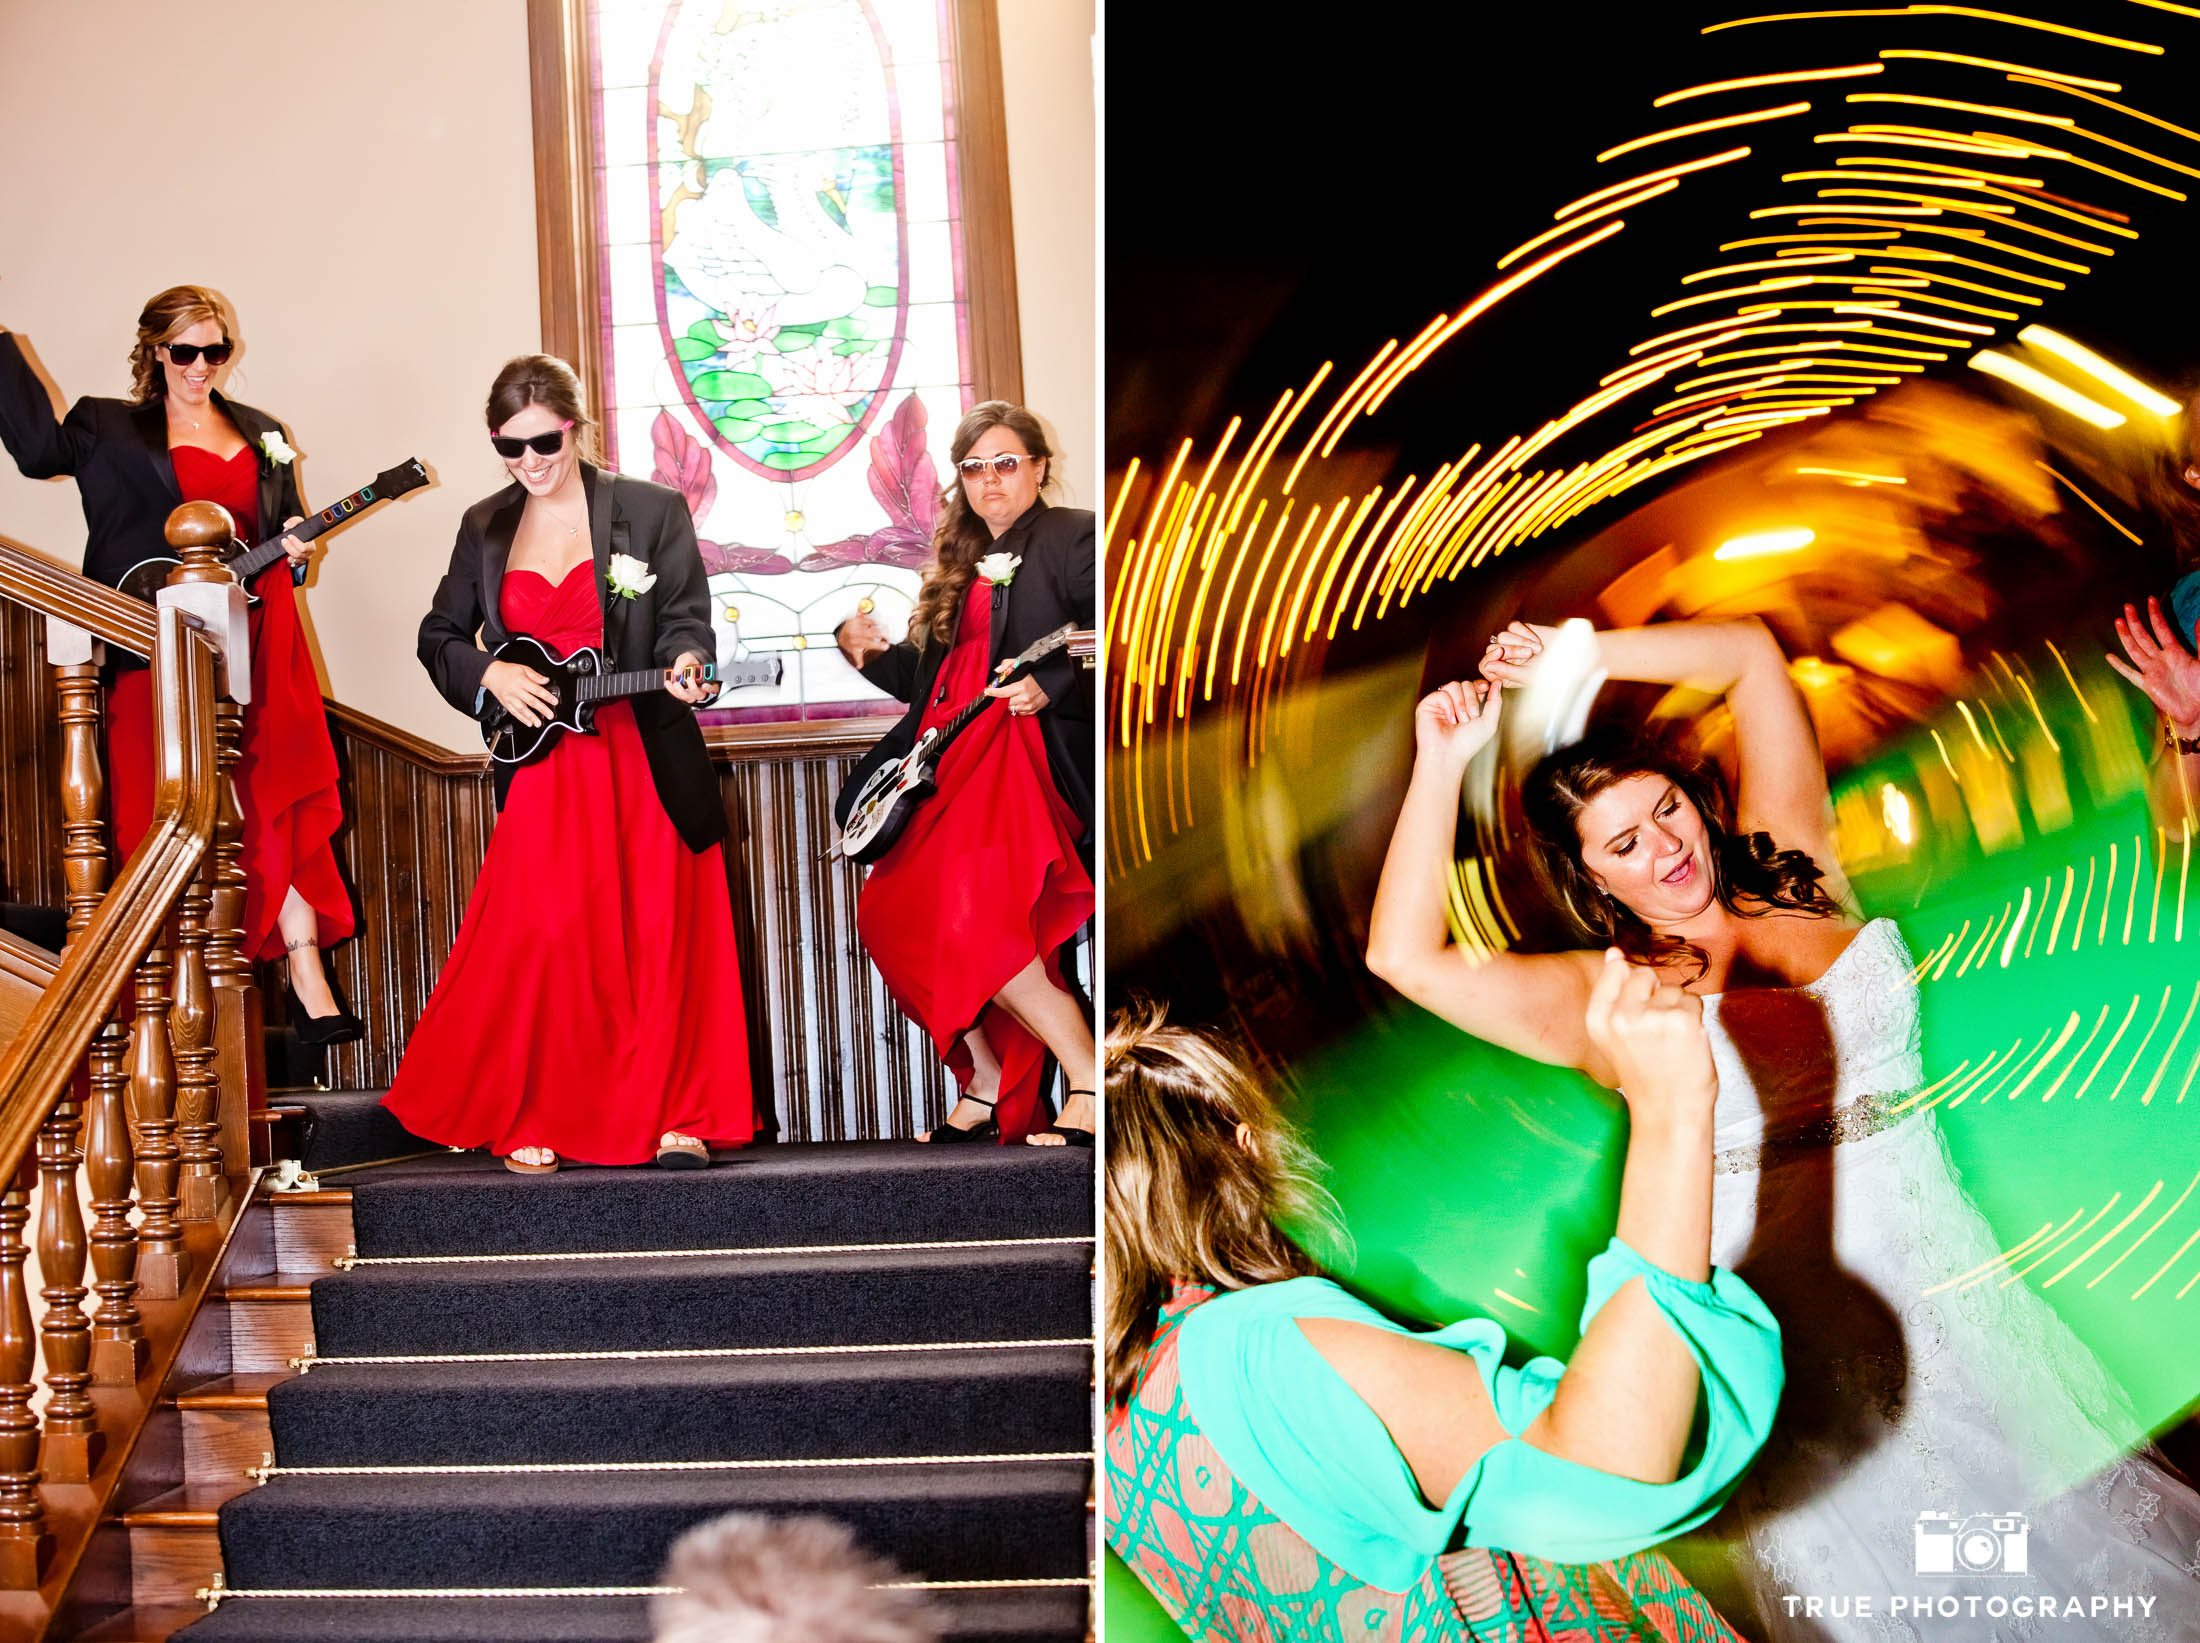 Bridesmaids make fun grand entrance and dance during wedding reception